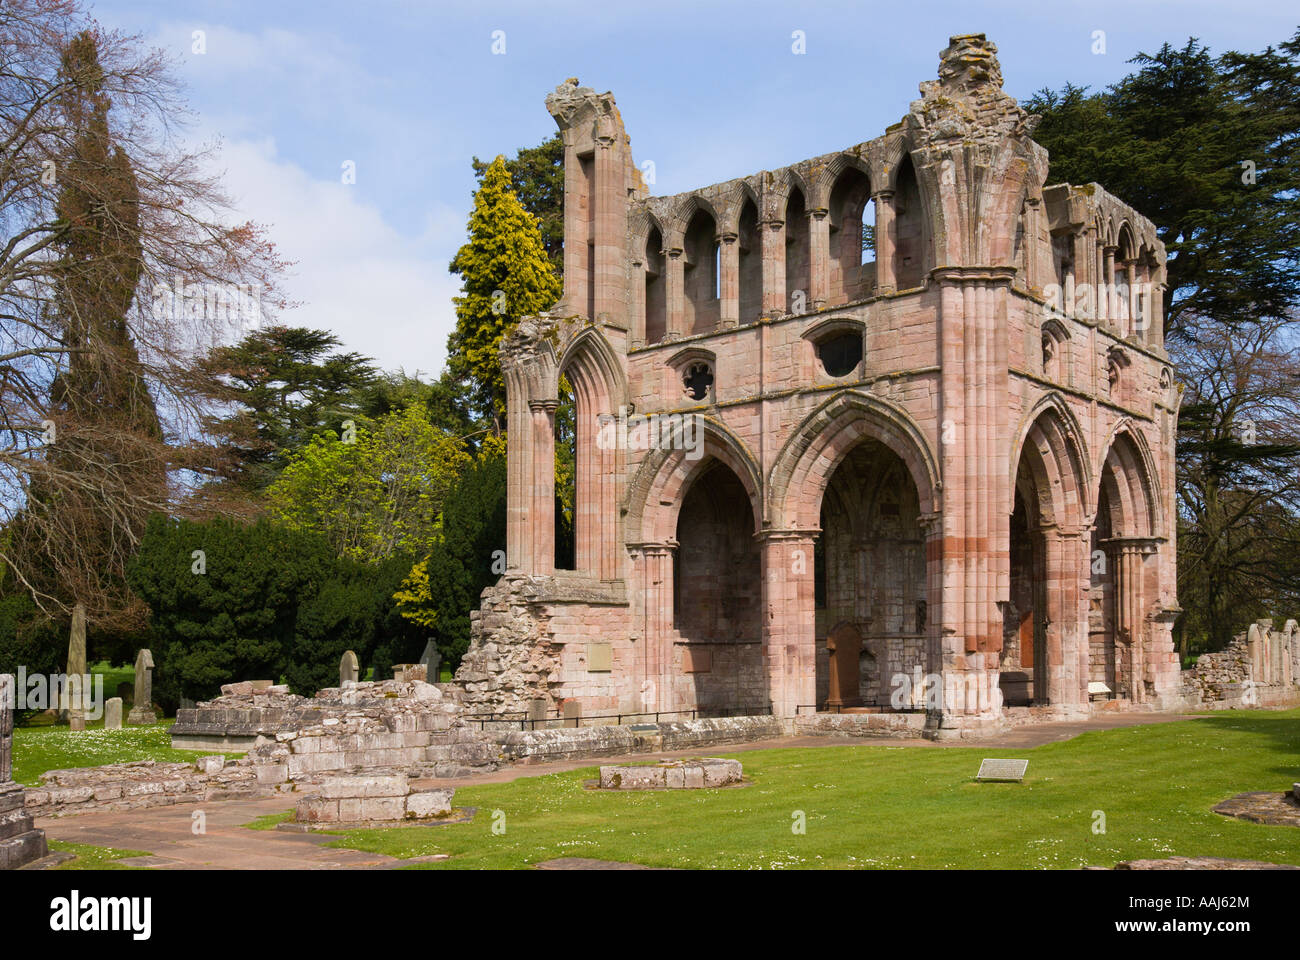 Dryburgh Abbey resting place of Sir Walter Scott and General Douglas Haig Scottish Borders UK - Stock Image